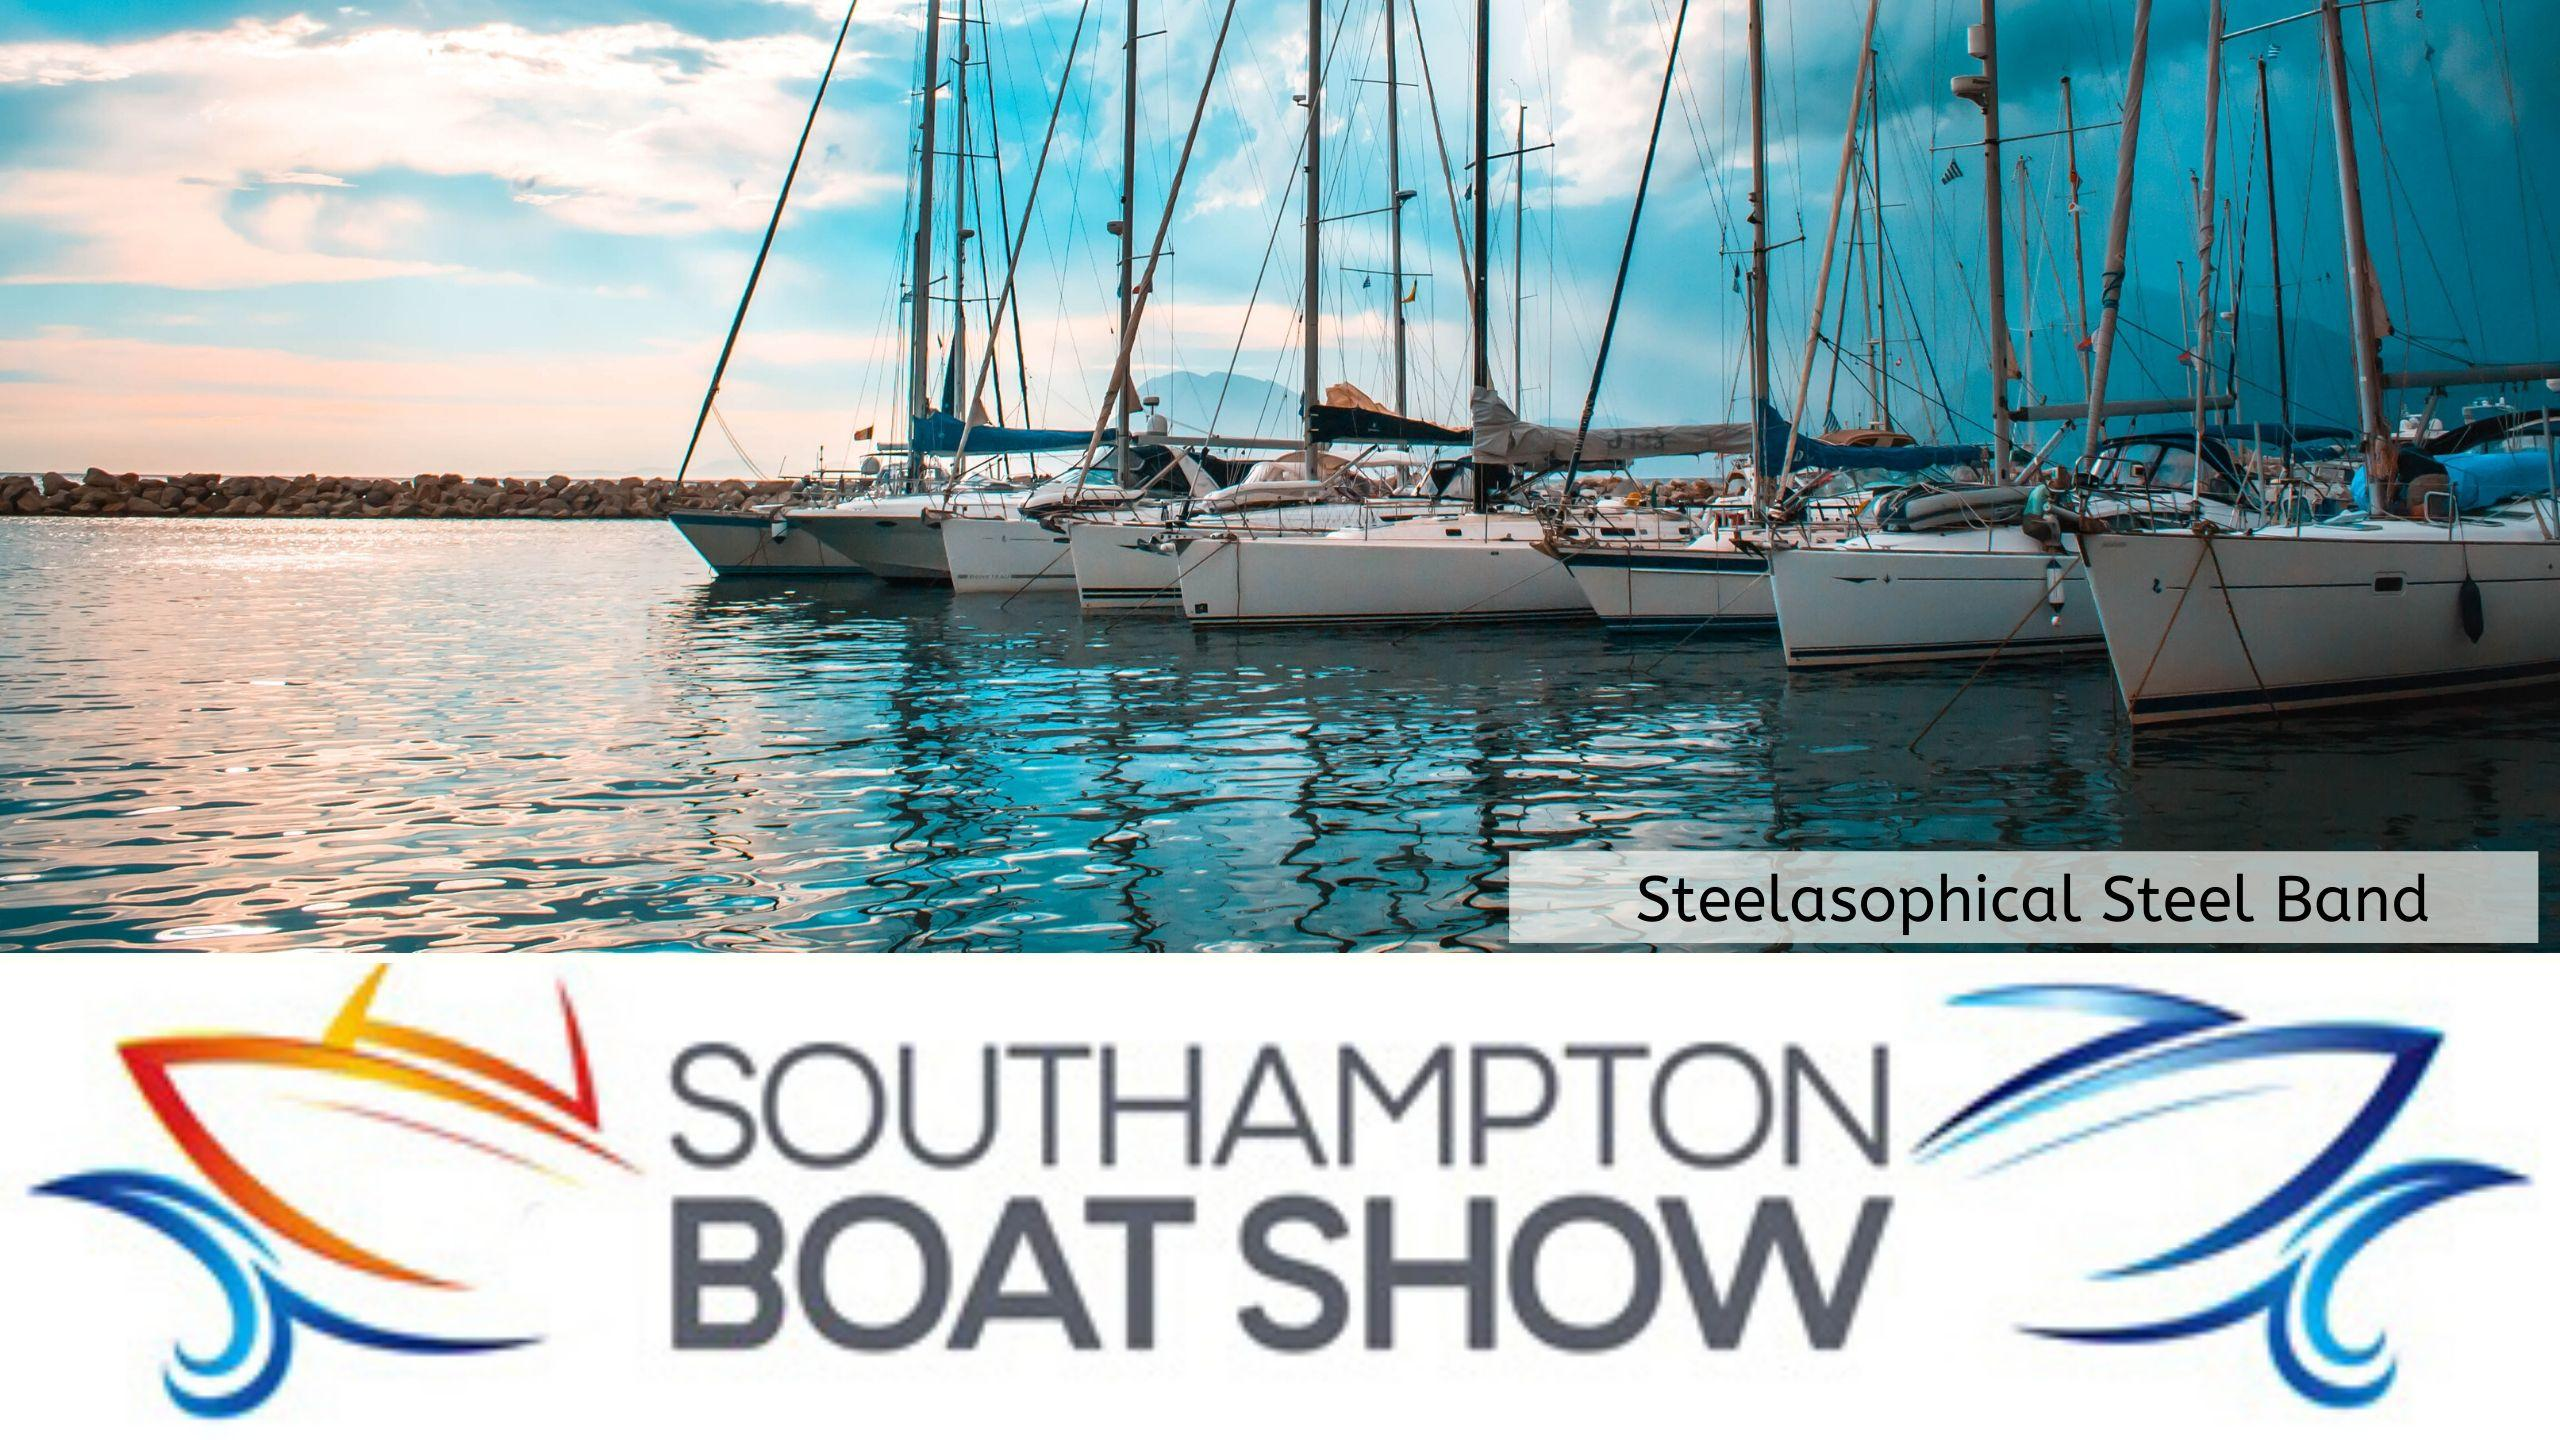 Steelasophical Steel Band Southampton Boat Show Yacht Market Music Stage 22e